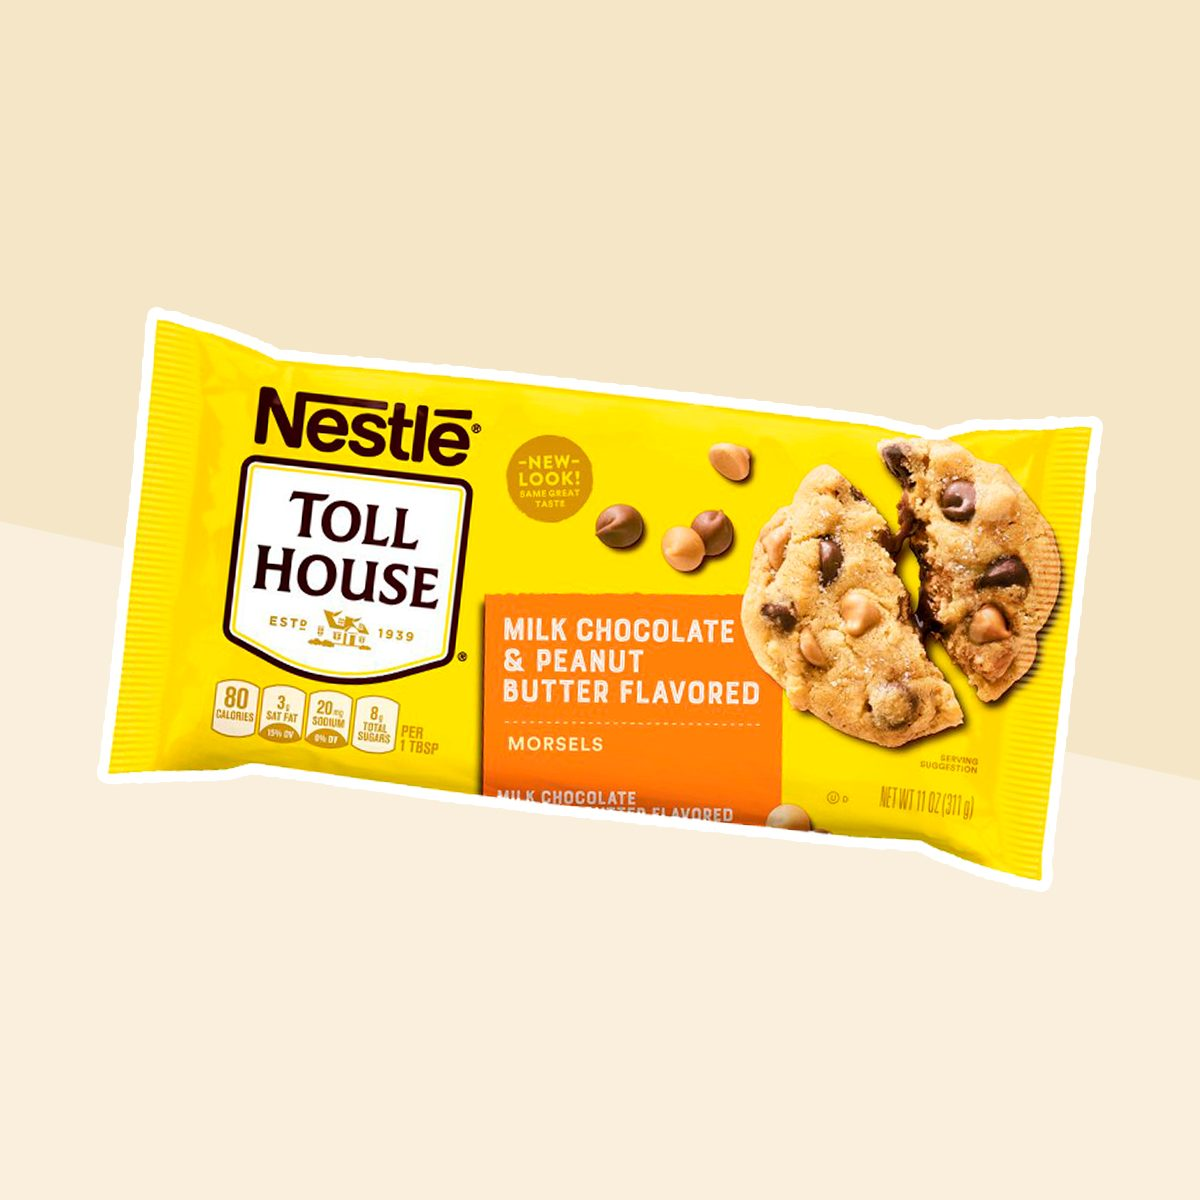 Nestlé Toll House Peanut Butter & Milk Chocolate Morsels